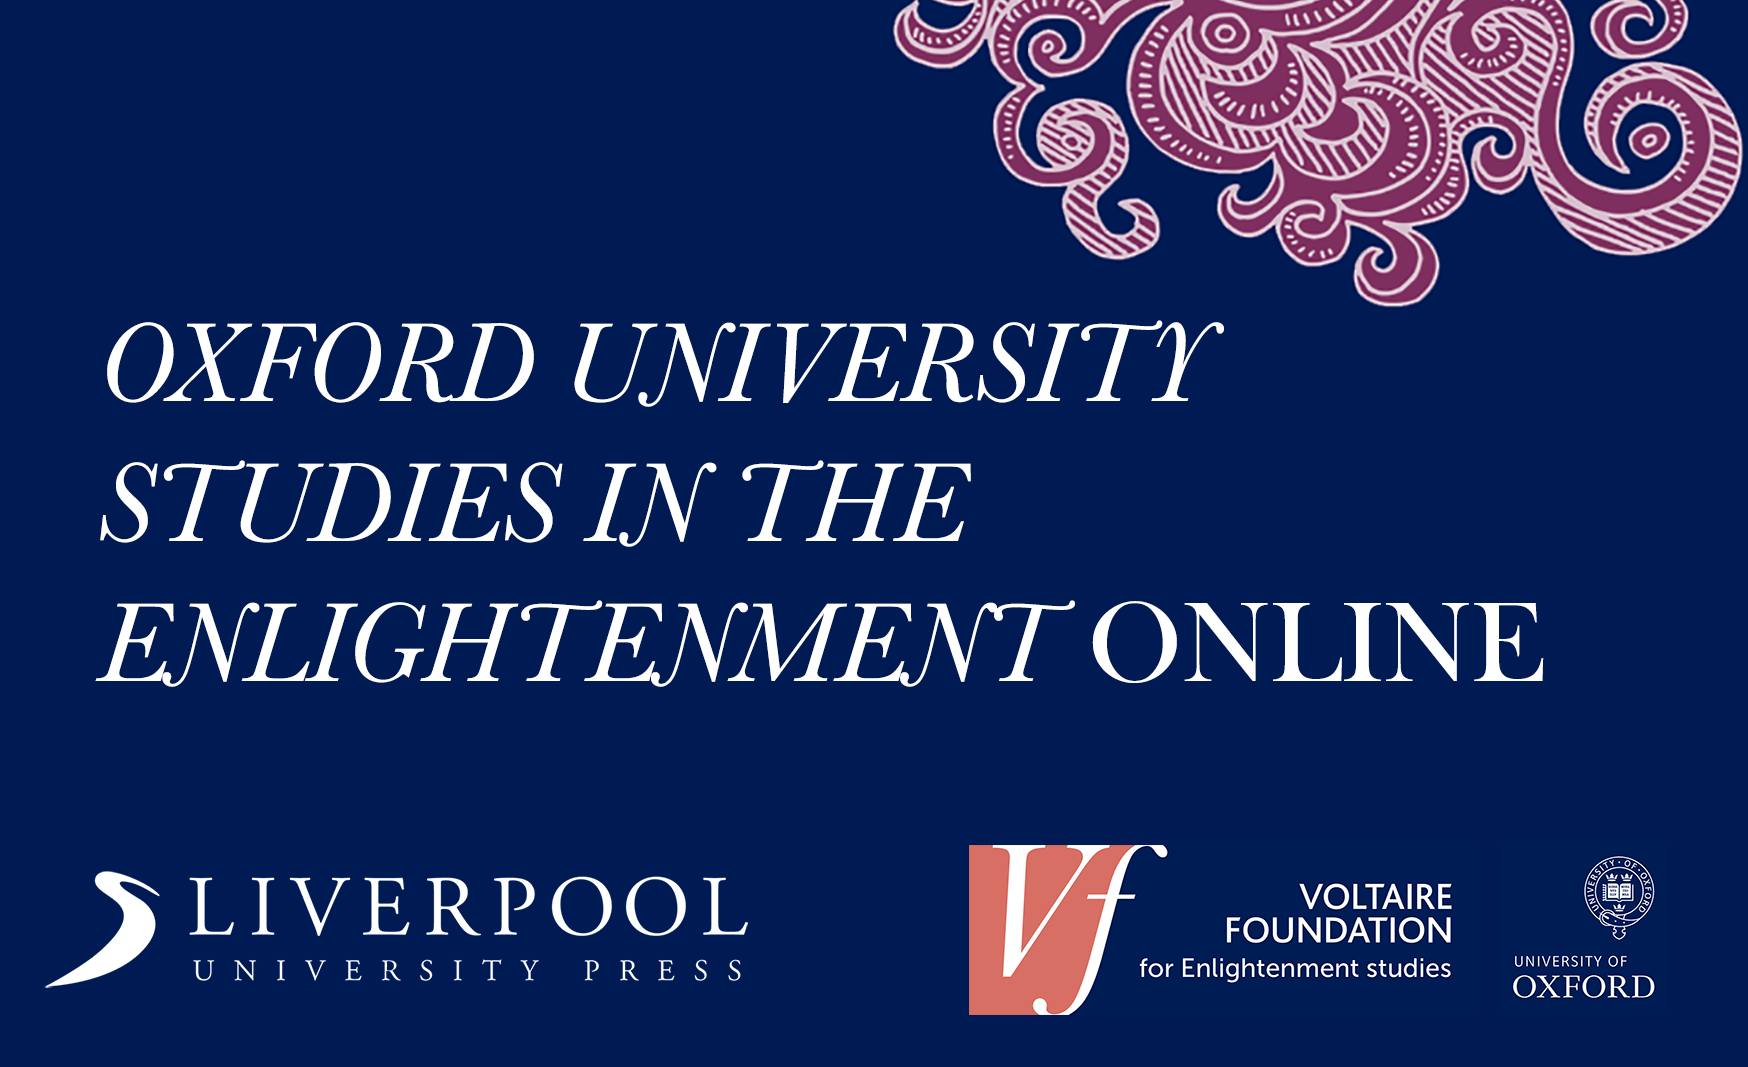 Oxford University Studies in the Enlightenment ONLINE hero image